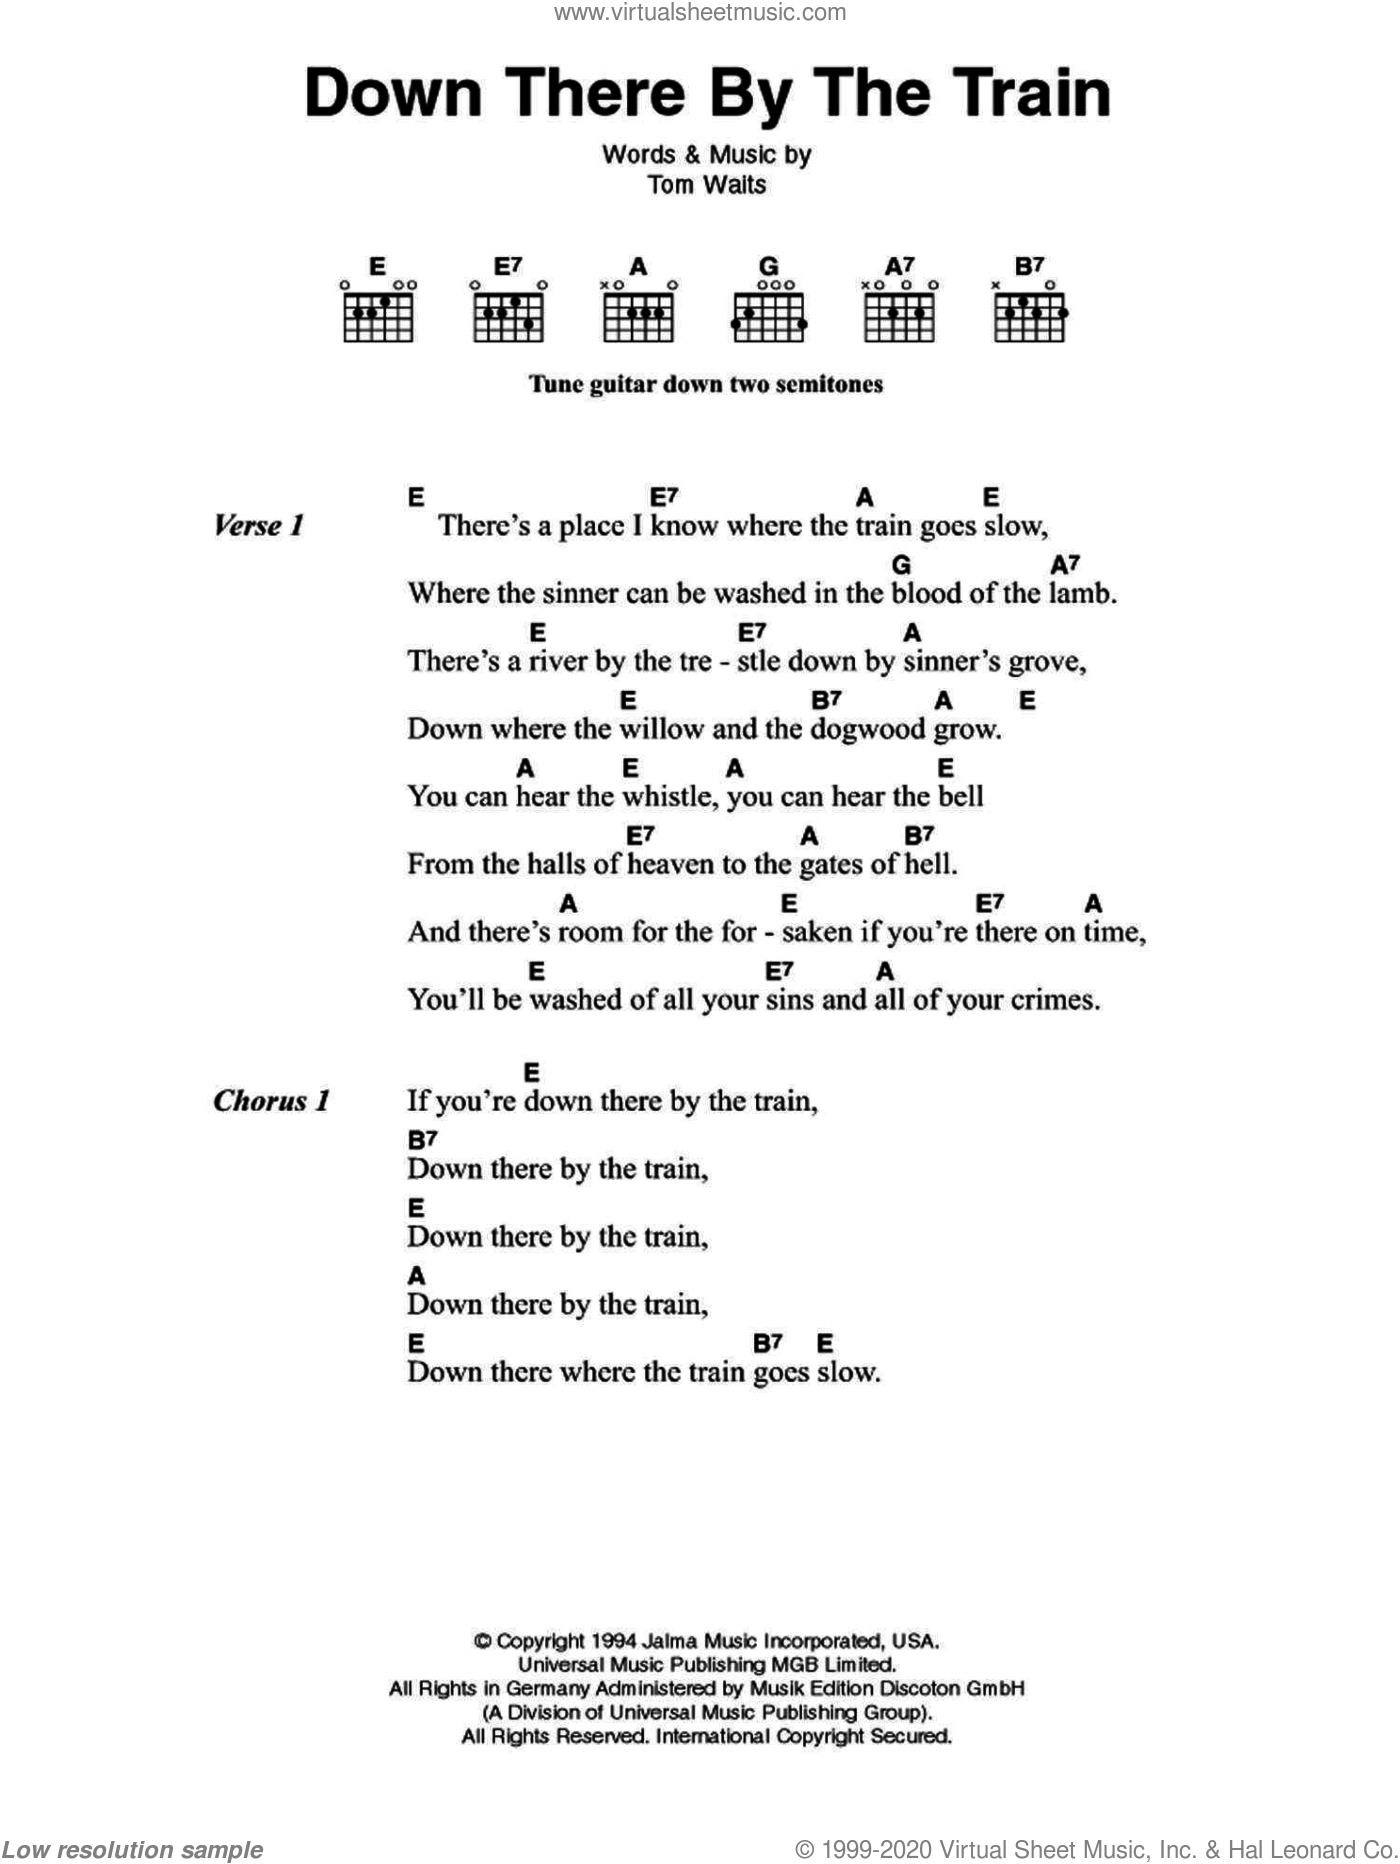 Down There By The Train sheet music for guitar (chords) by Johnny Cash and Tom Waits, intermediate skill level